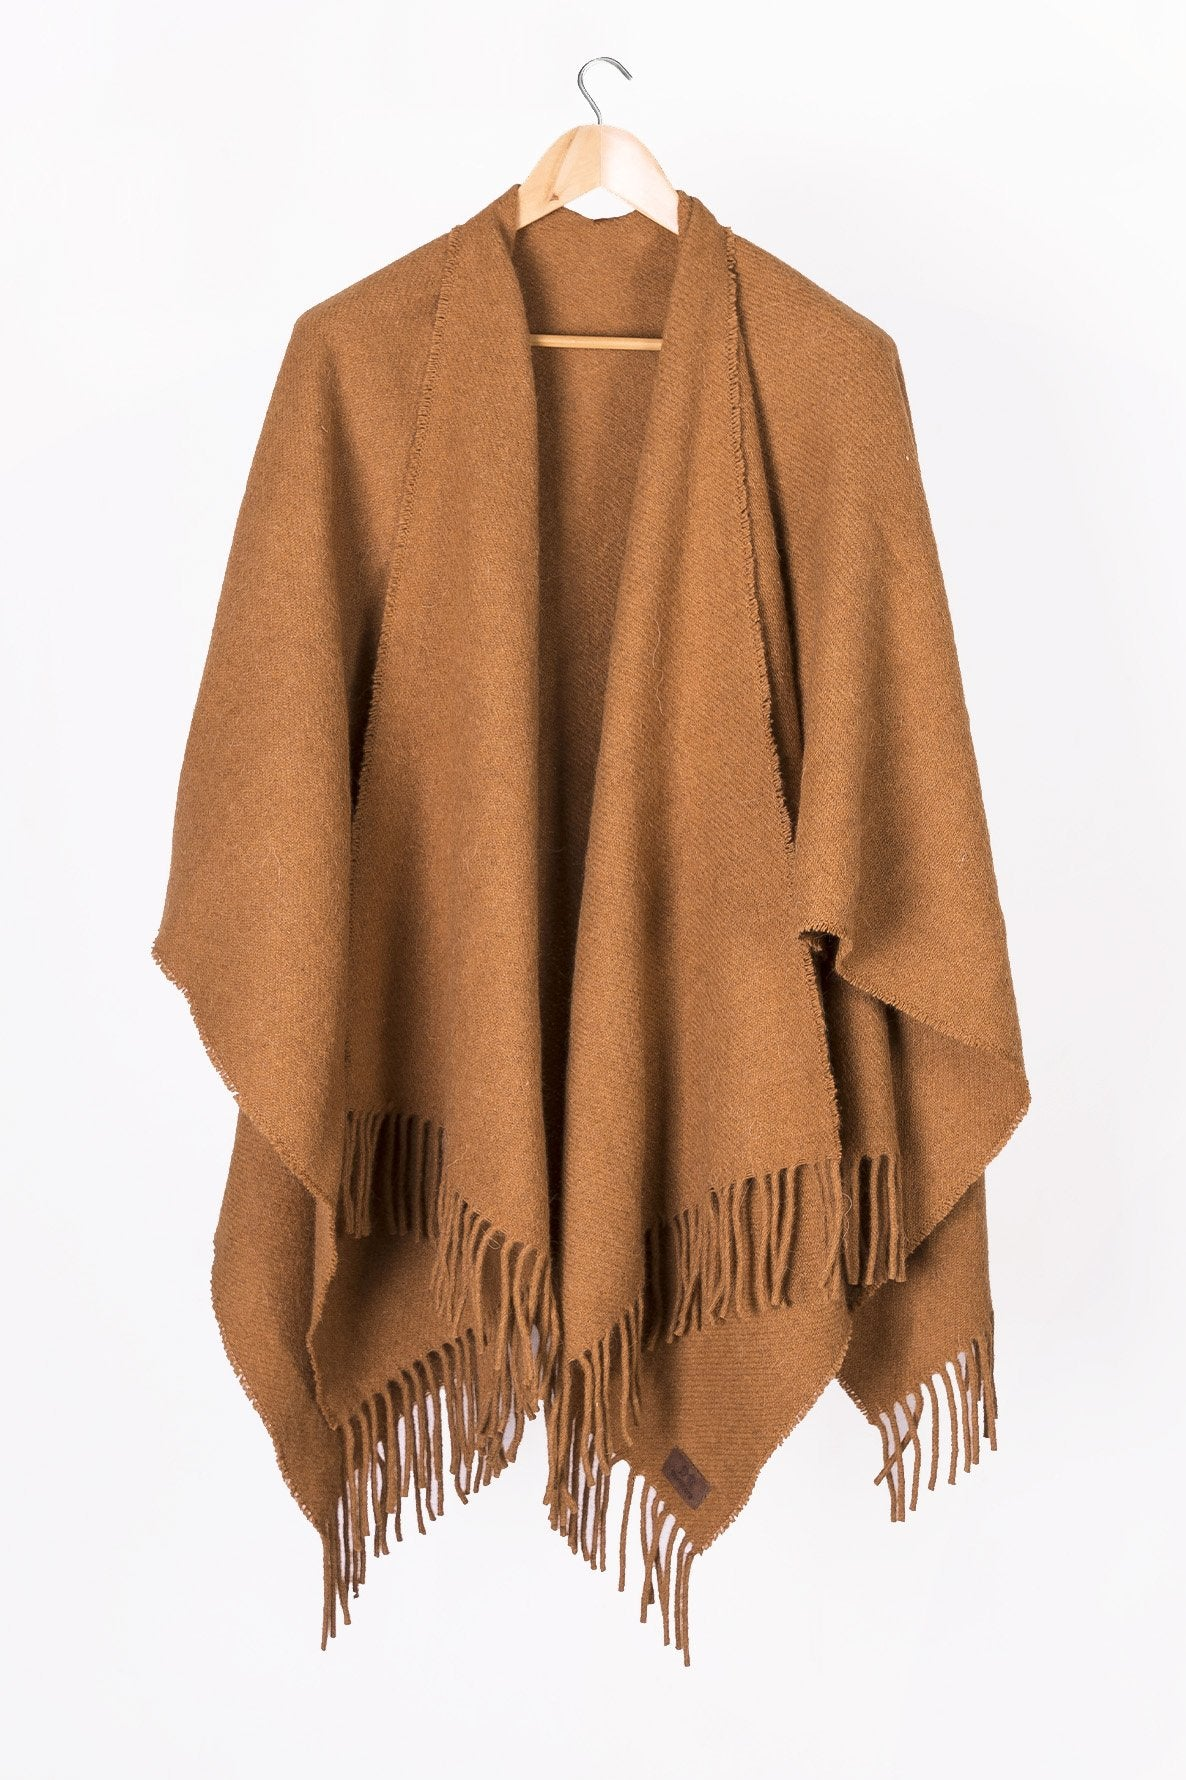 Caramel Llama and Sheep Wool Poncho on Hanger.